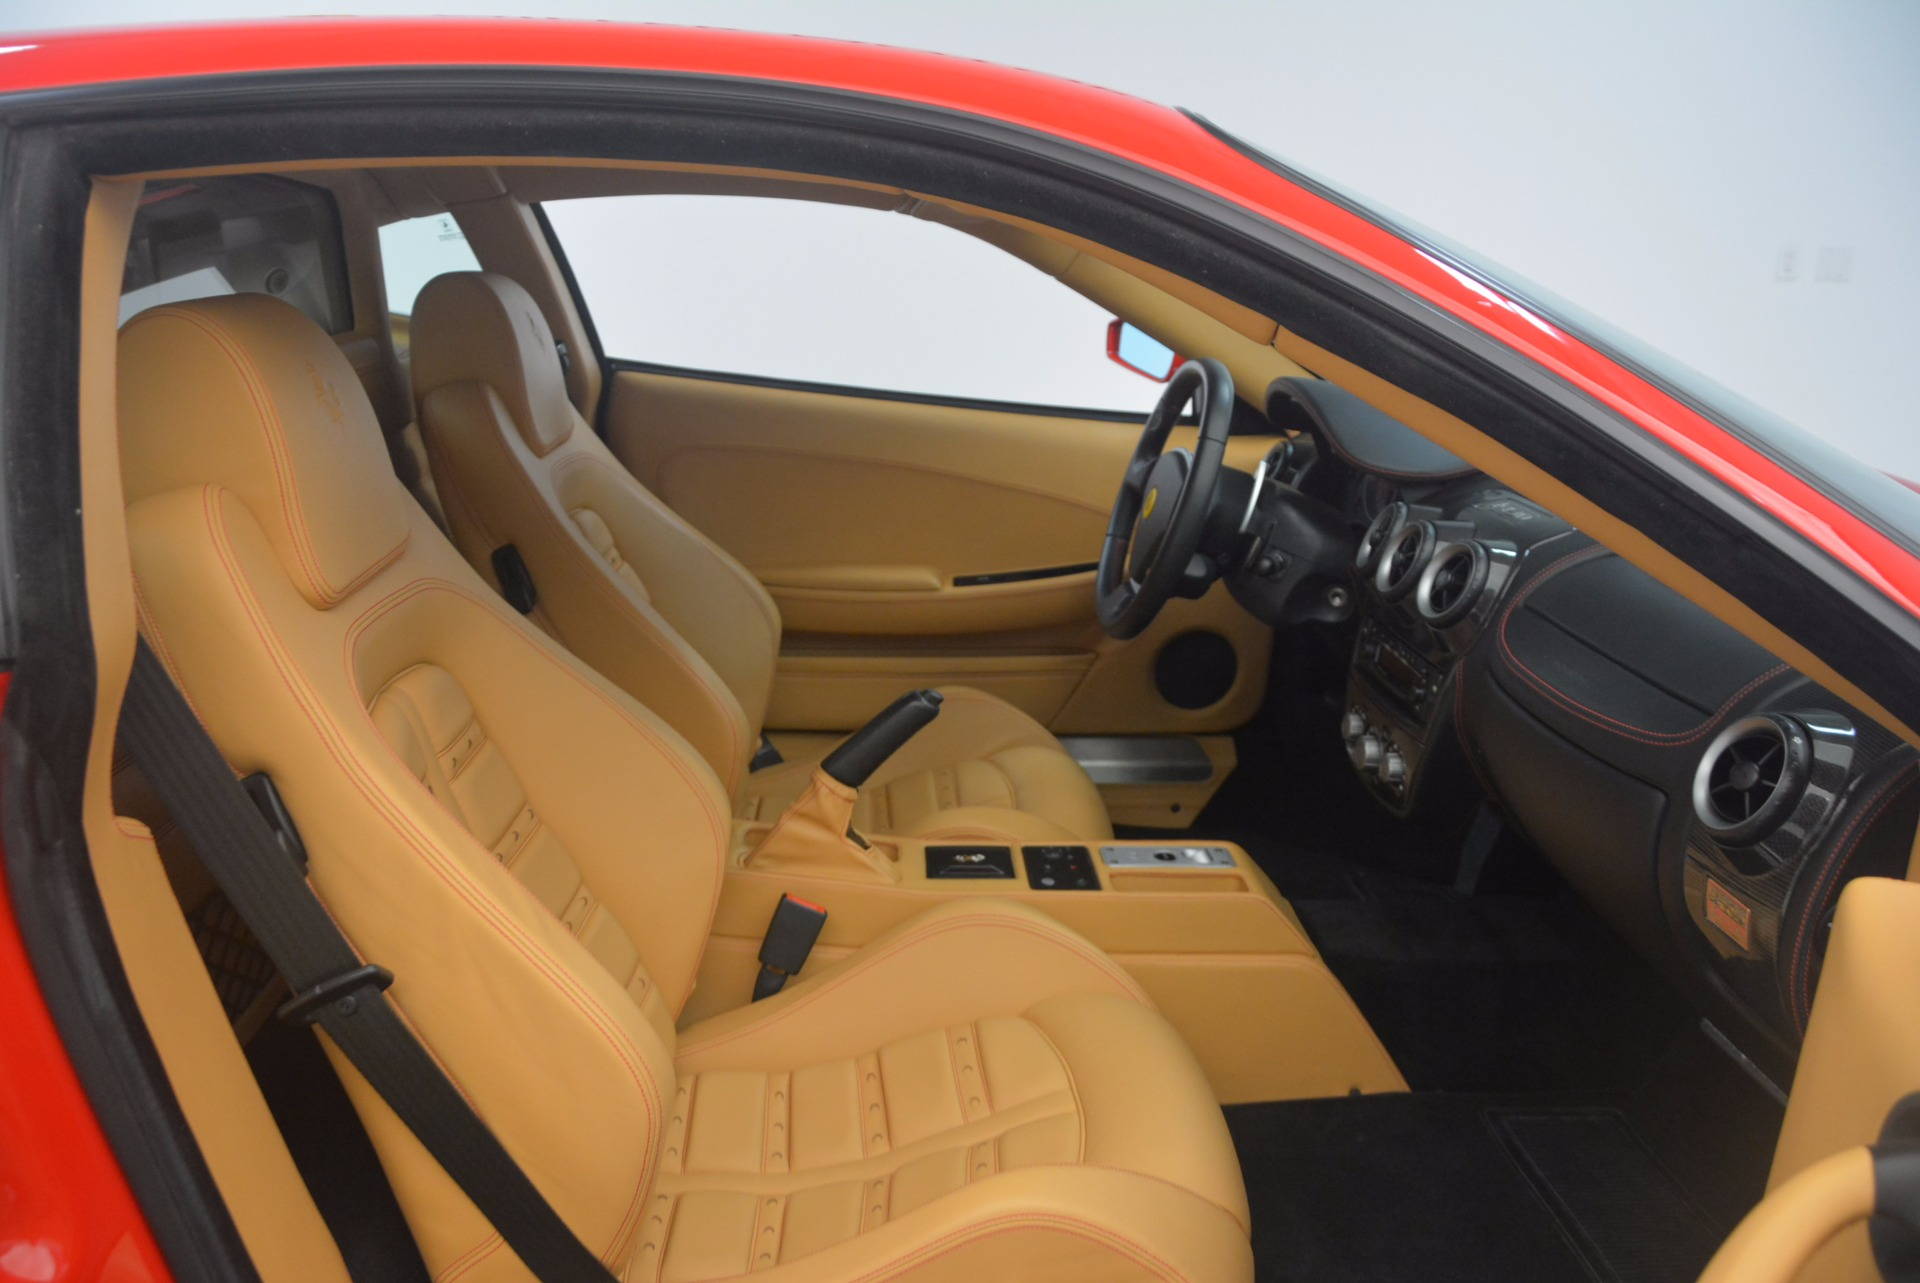 Used 2005 Ferrari F430  For Sale In Westport, CT 1184_p16